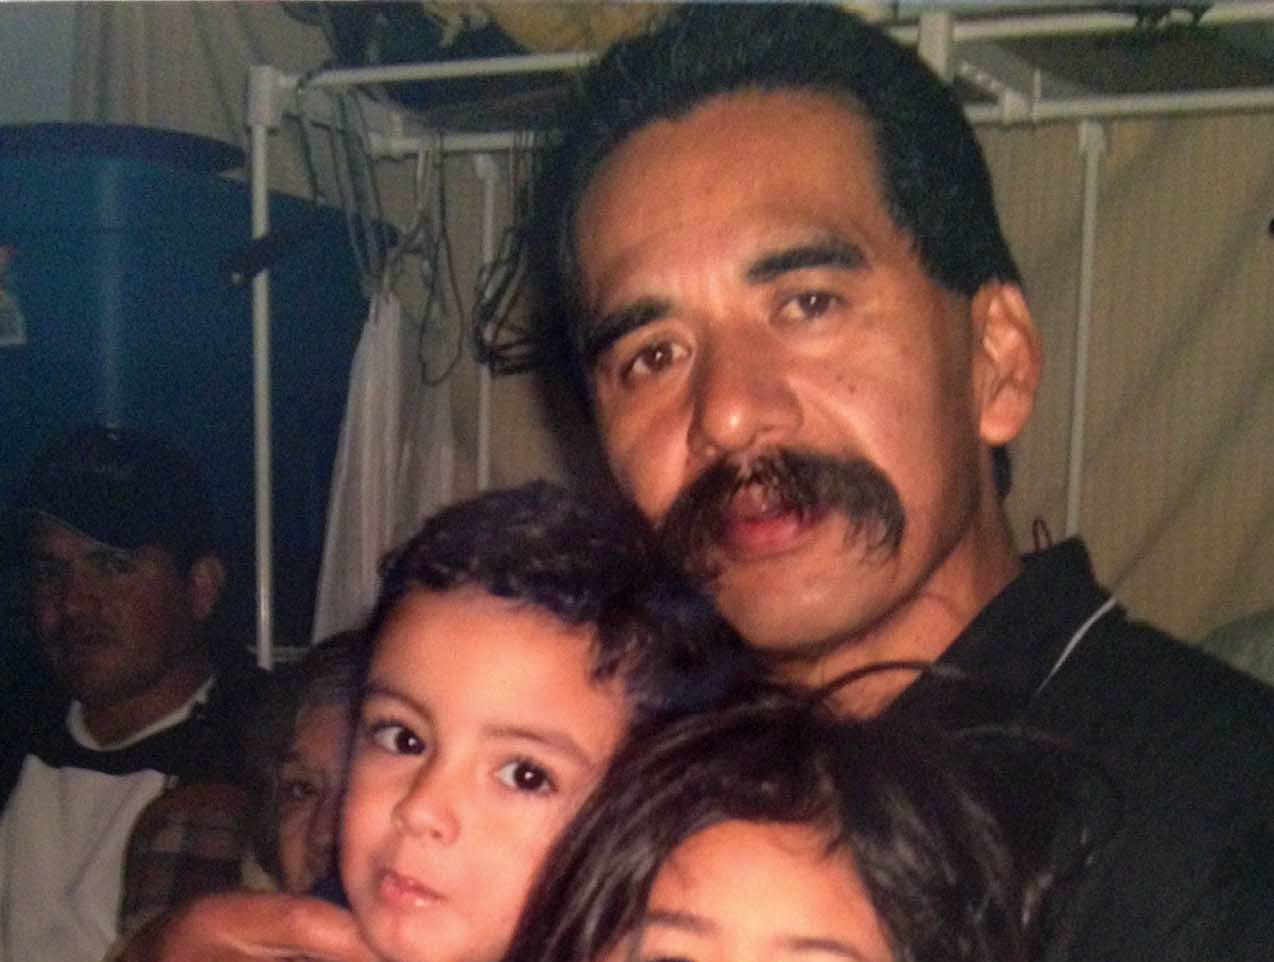 Mark Pajas Sr. is pictured with his loved ones.